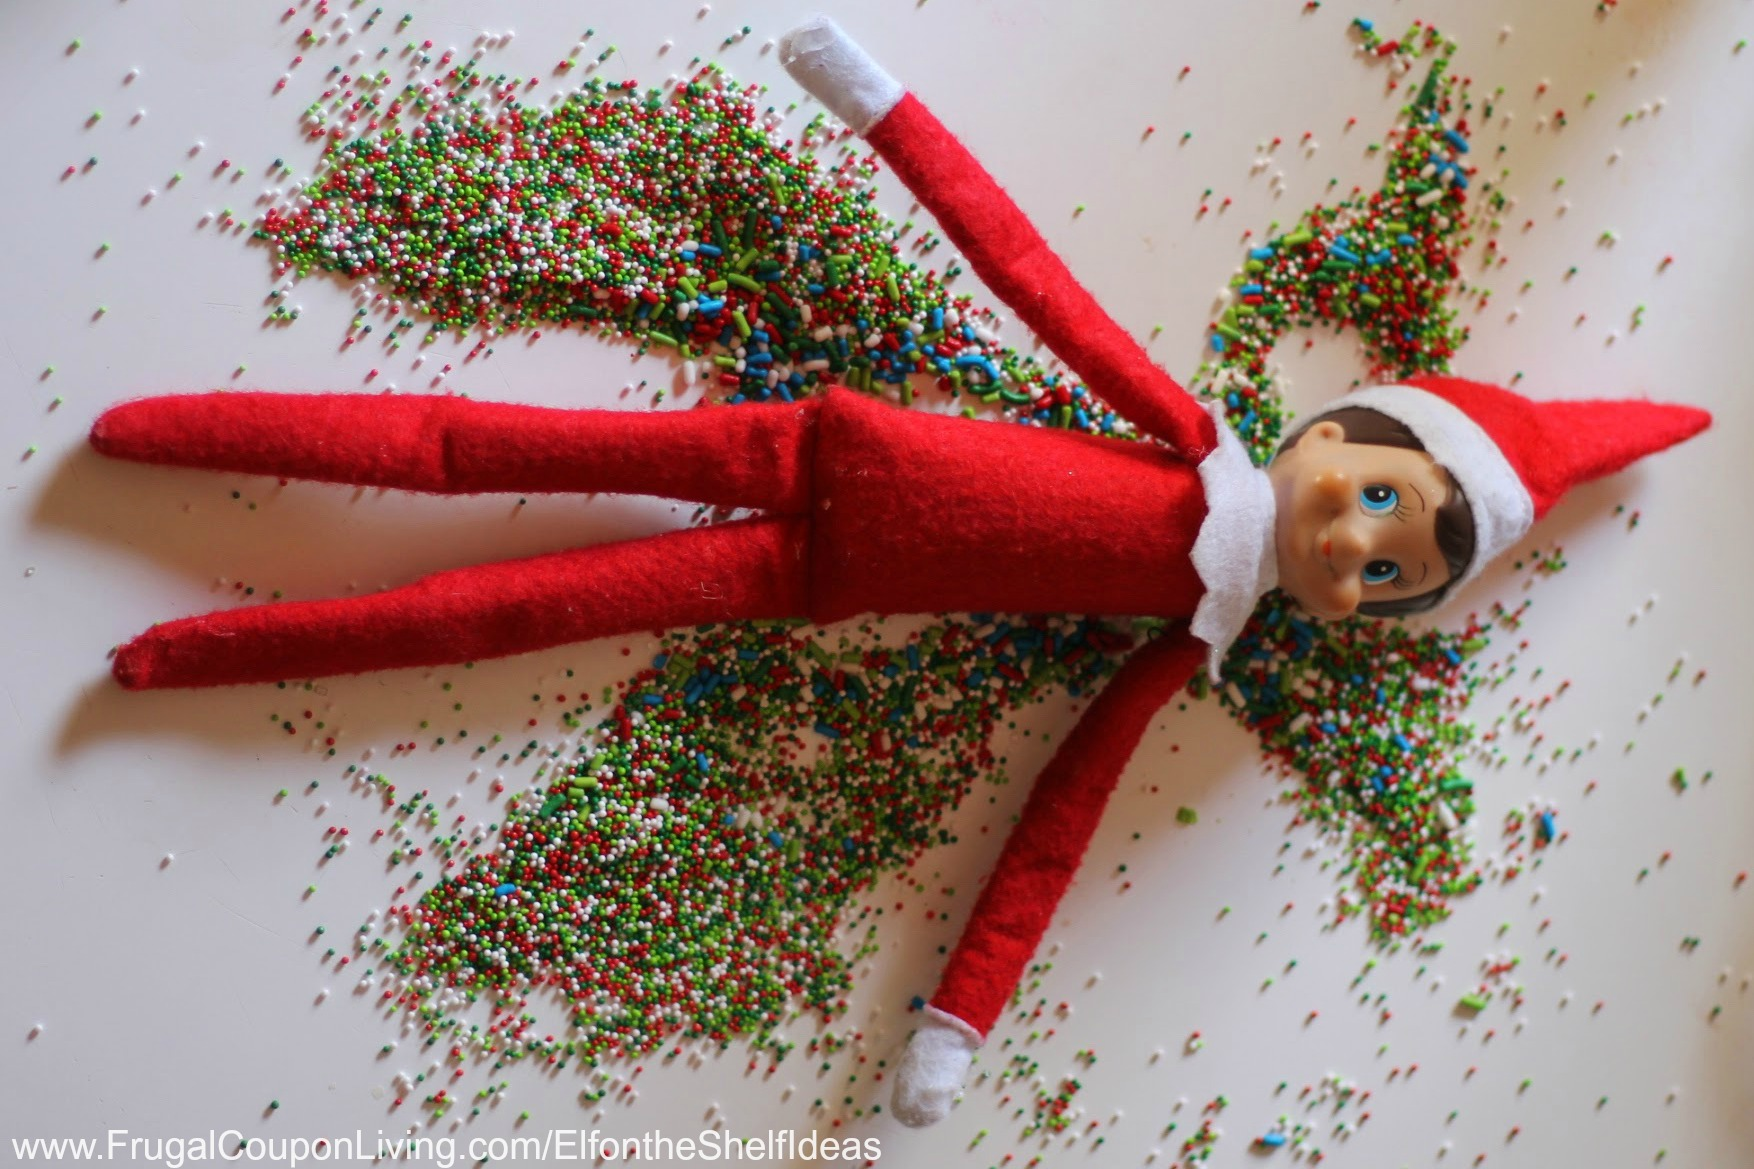 elf-on-the-shelf-ideas-sprinkle-angel-frugal-coupon-living